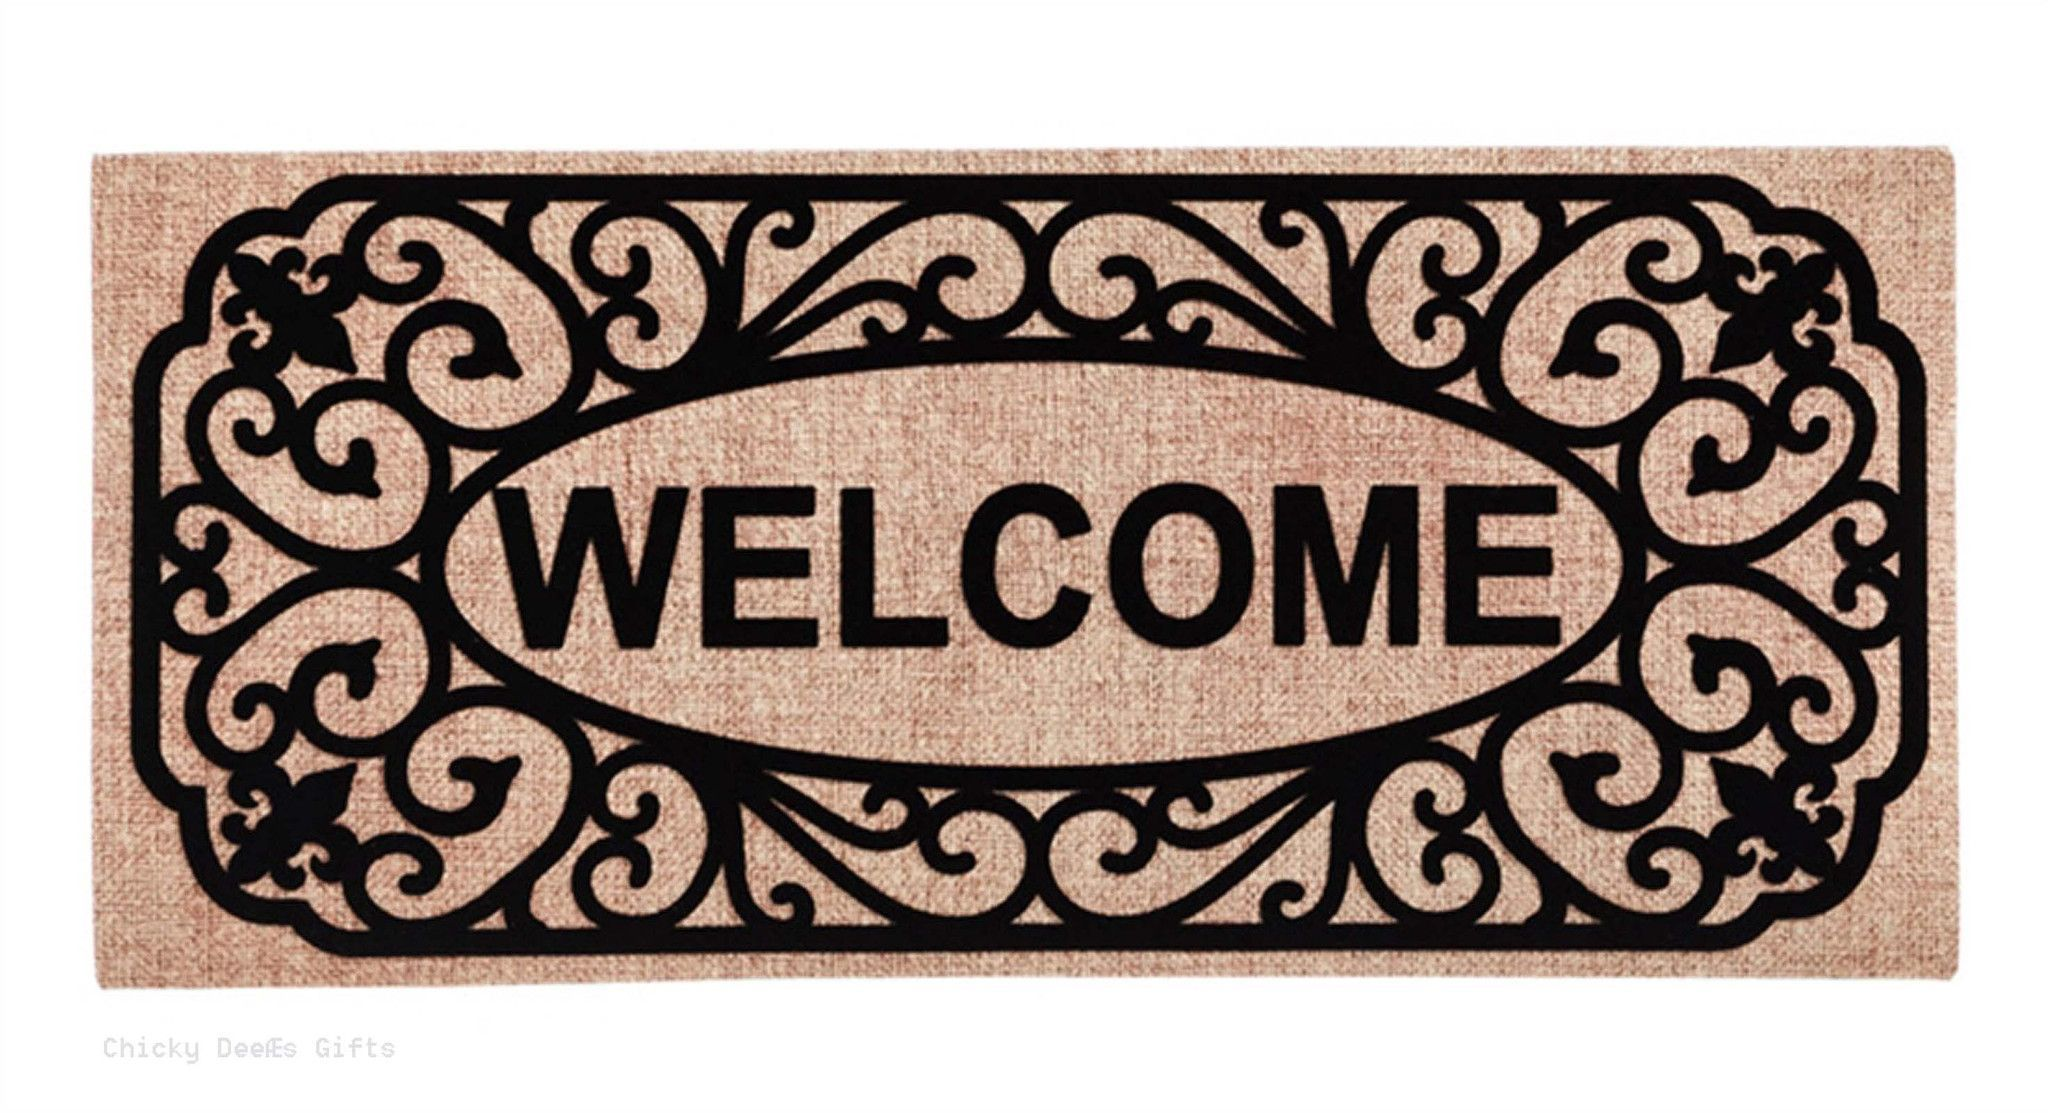 Evergreen Sassafras Switch Mat Garden Filigree Welcome 431241BL